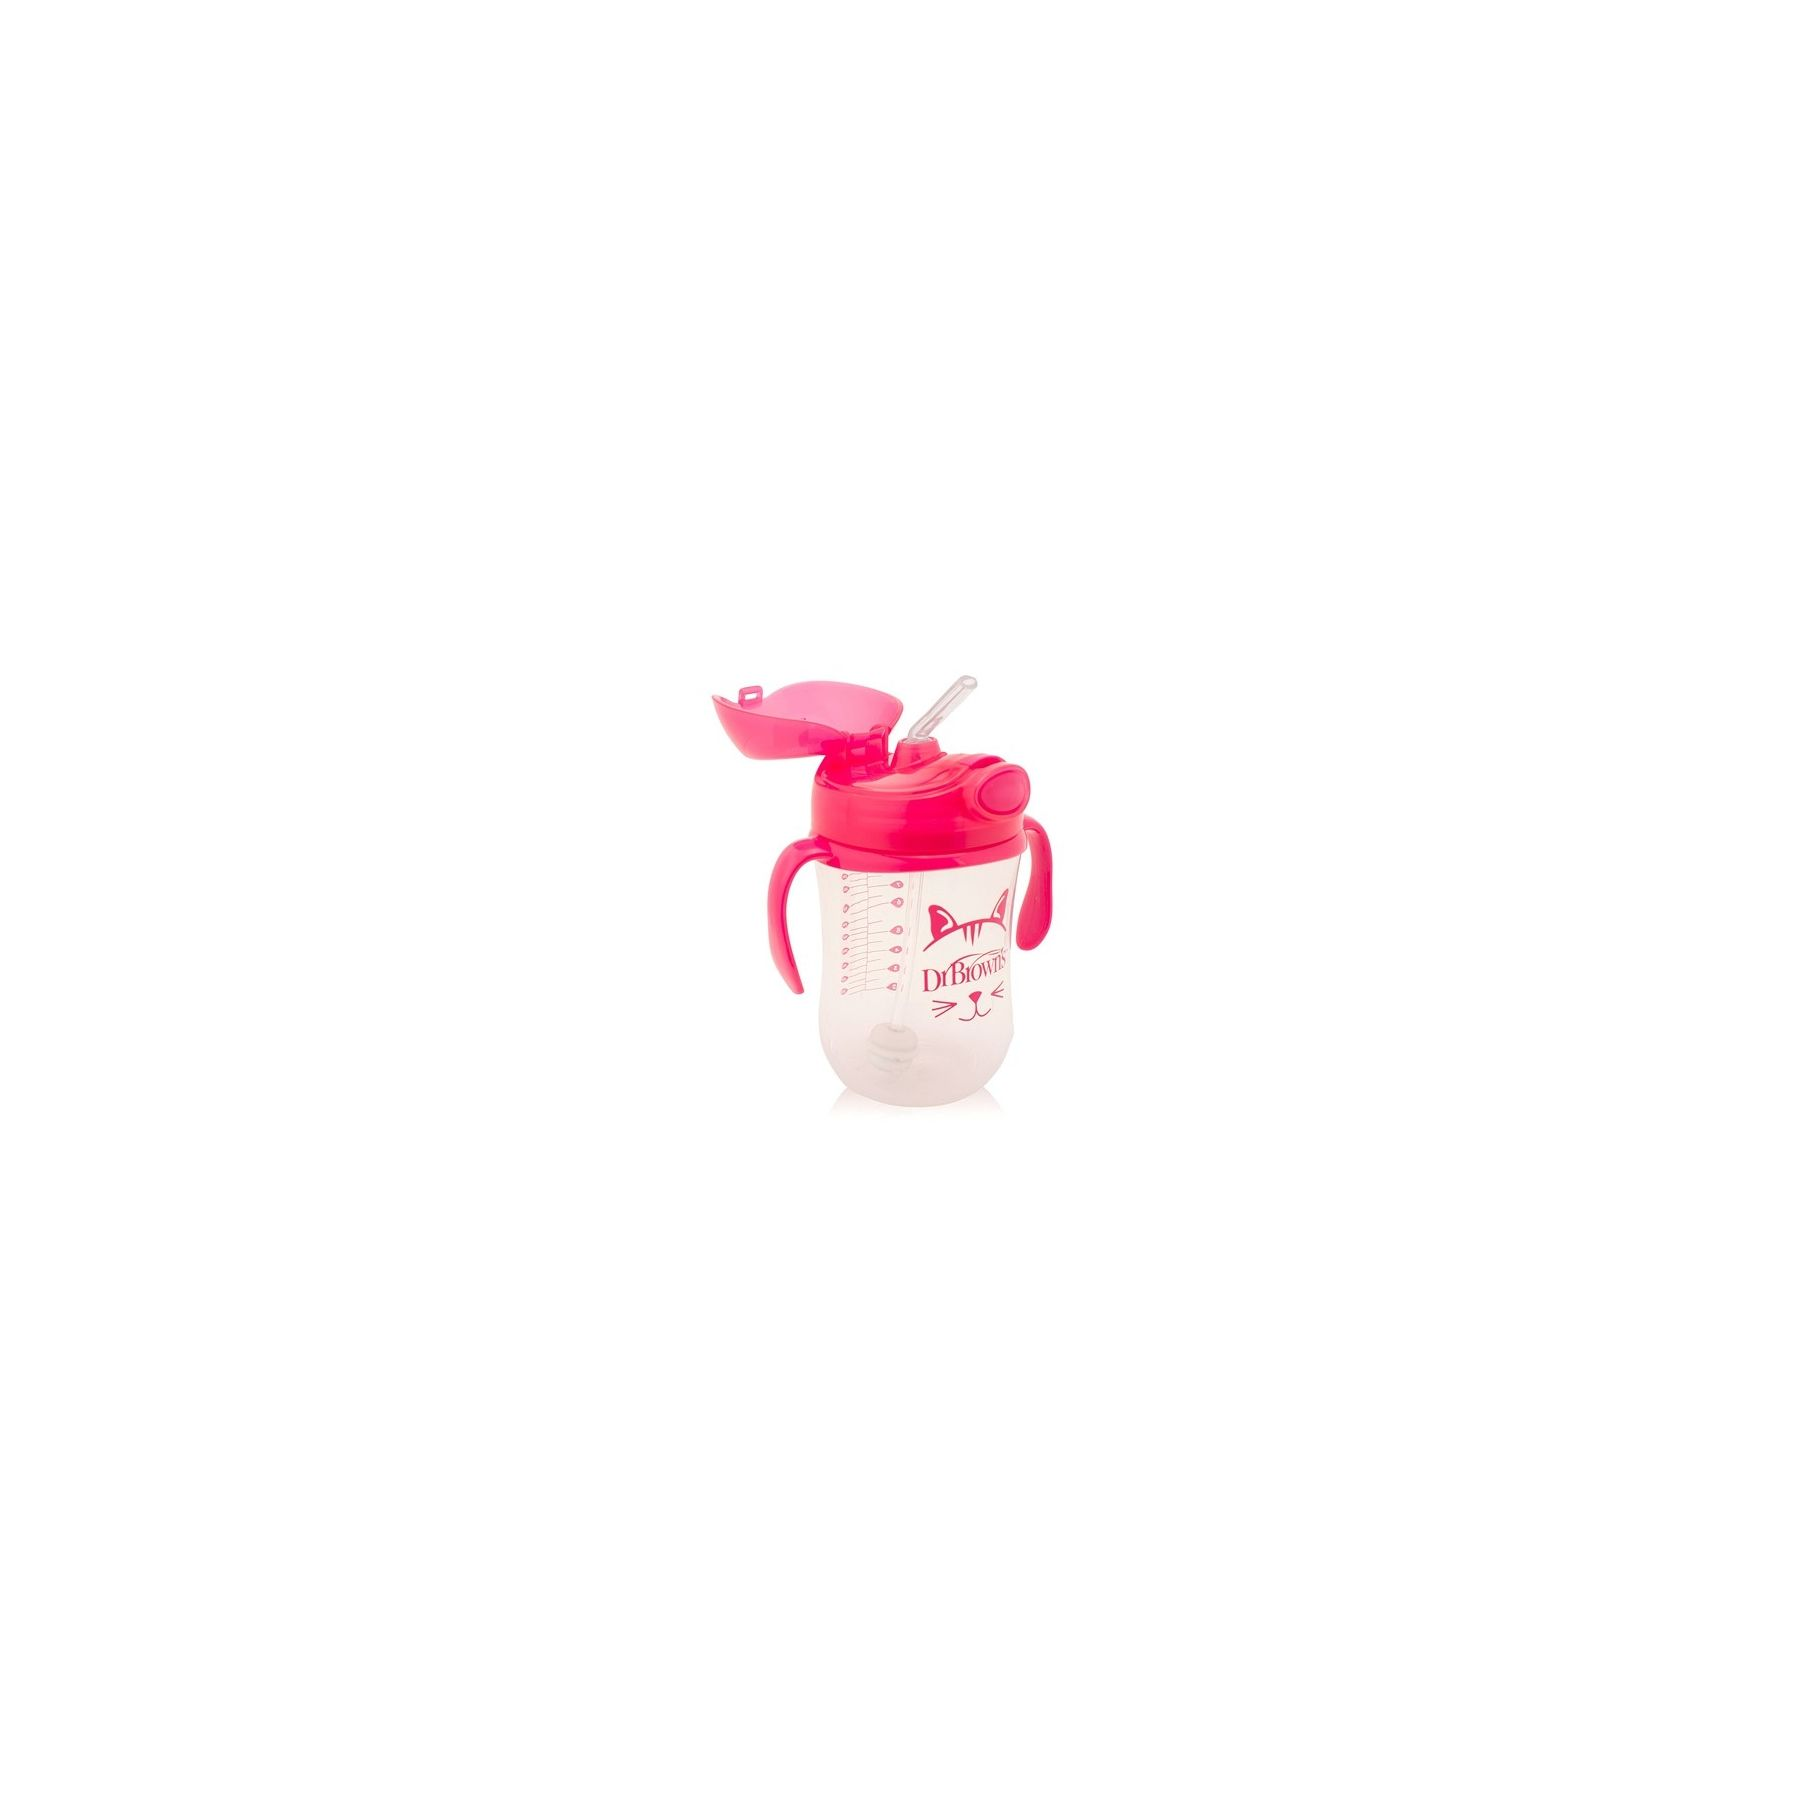 Tasse à paille 270ml Rose Dr Brown's